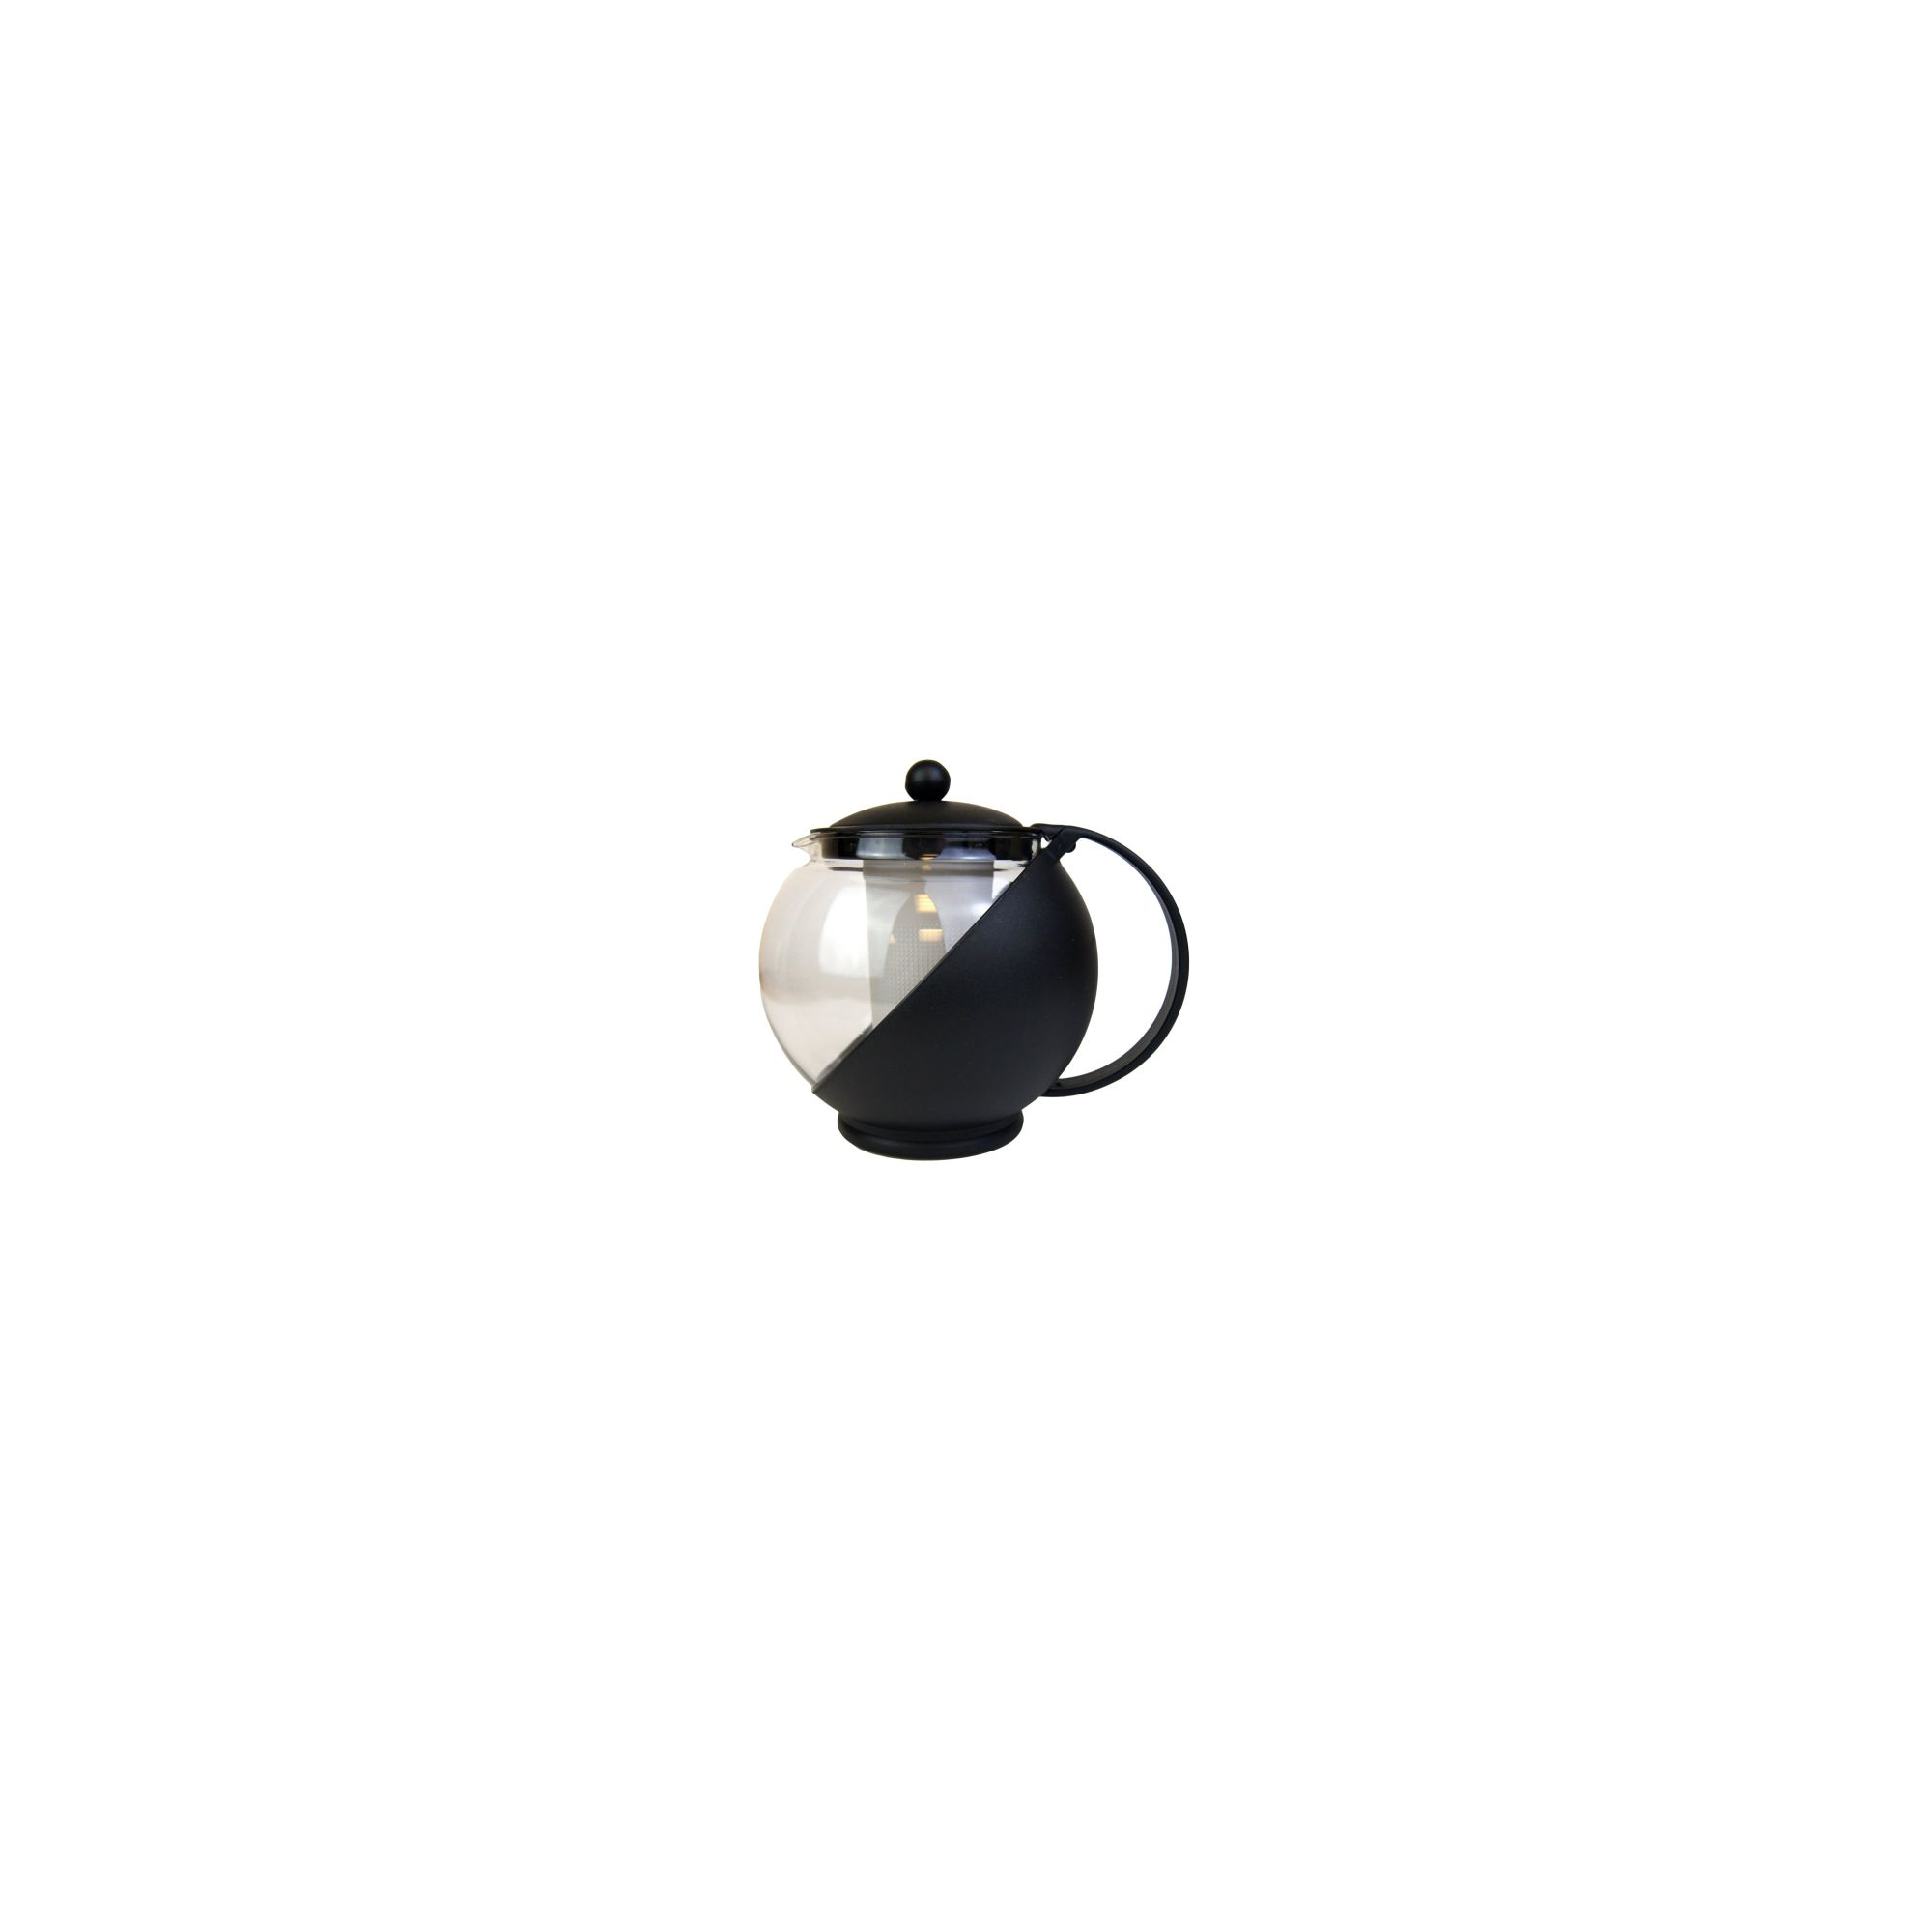 Teapot with Infuser, 2 Cup